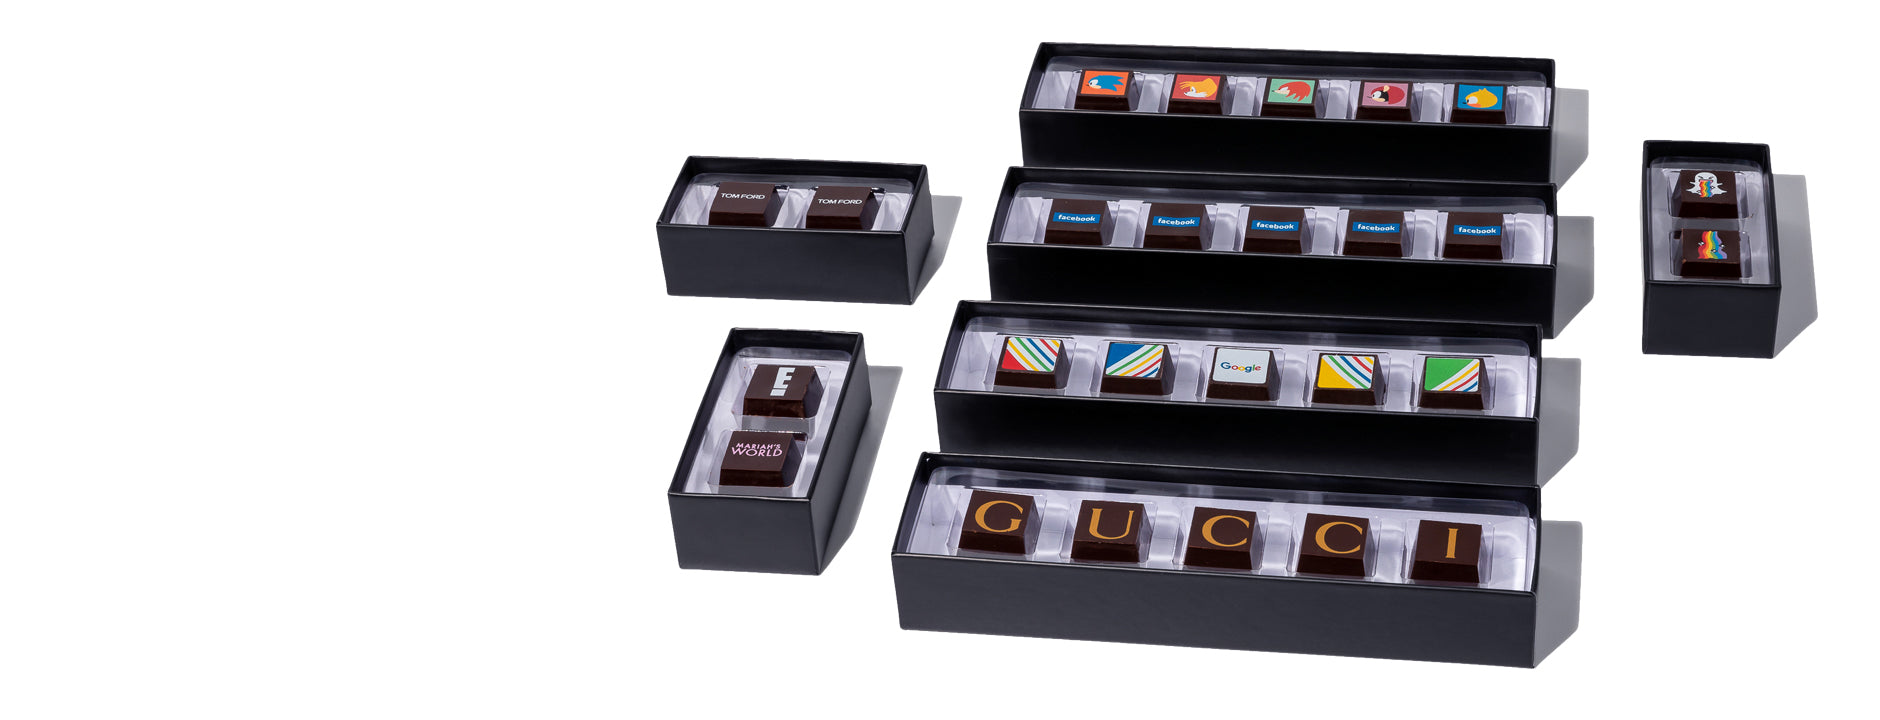 Compartes Gourmet Chocolates & Chocolate Gifts